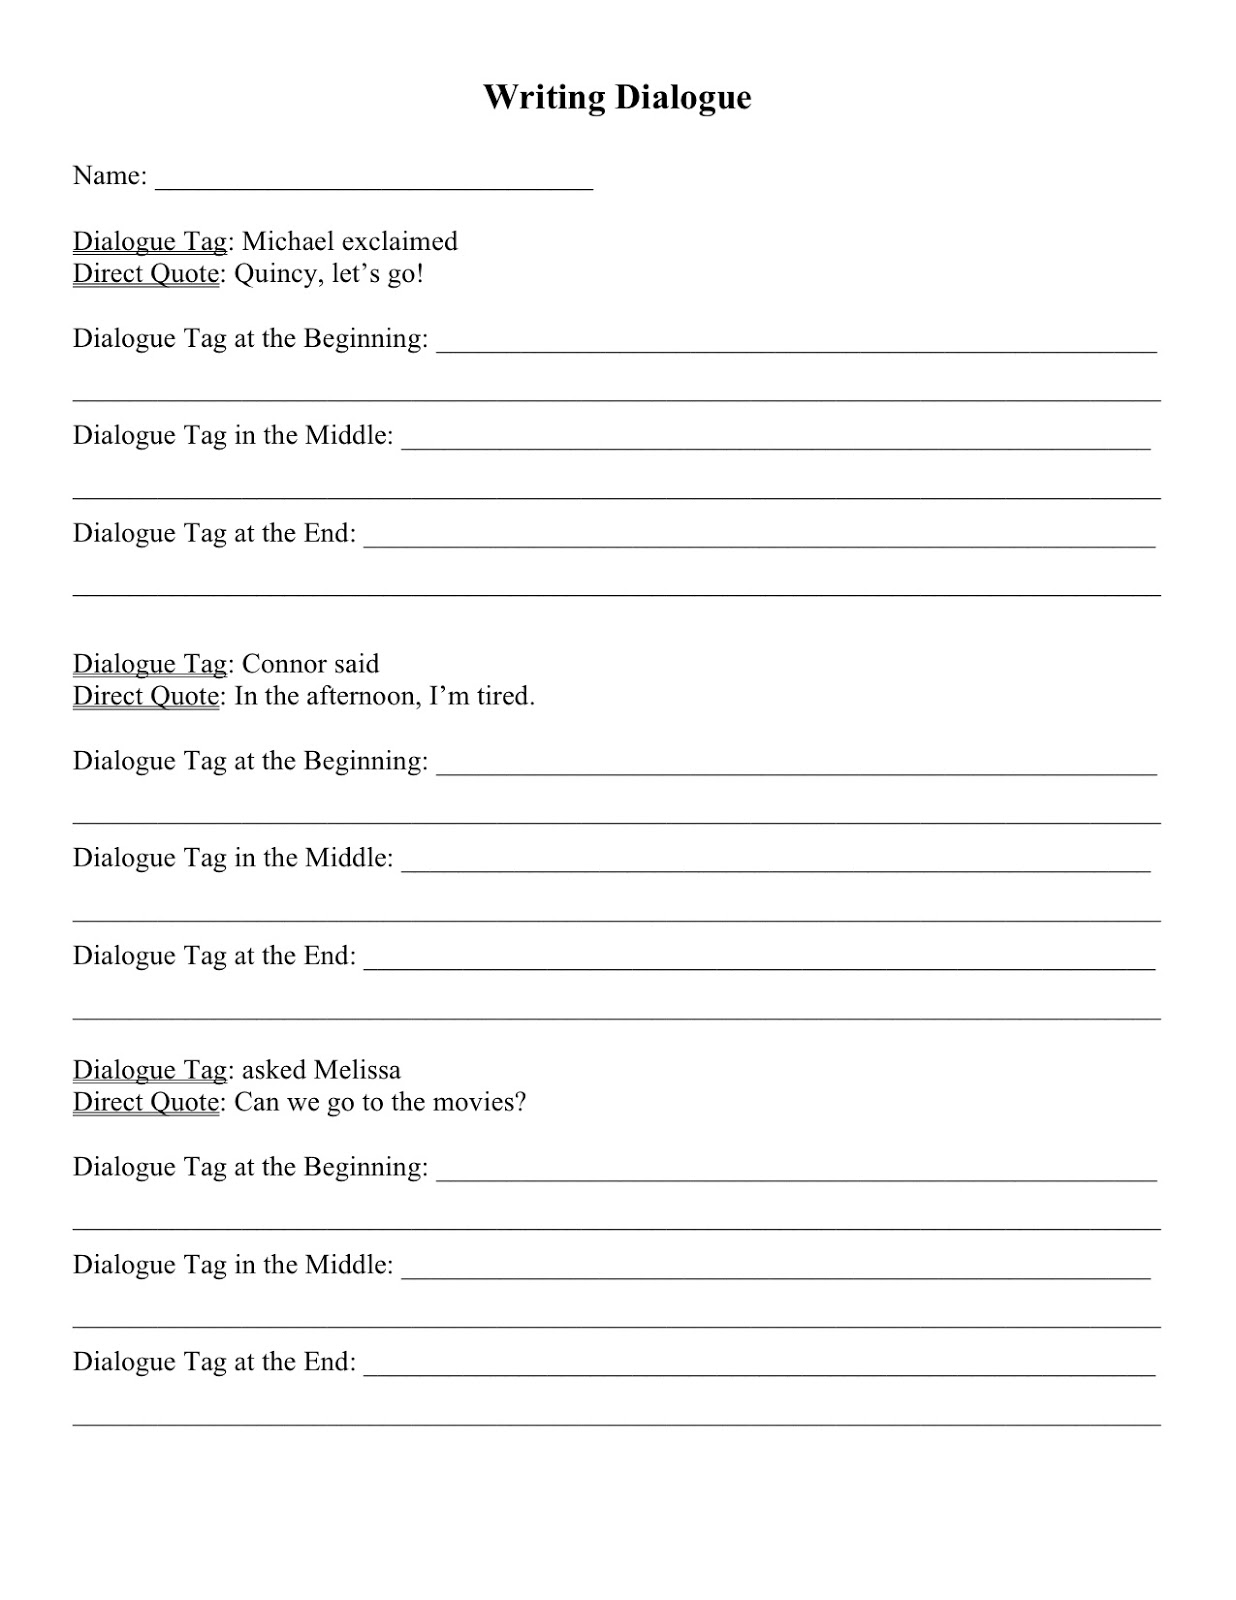 Dialogue writing worksheets for grade 4